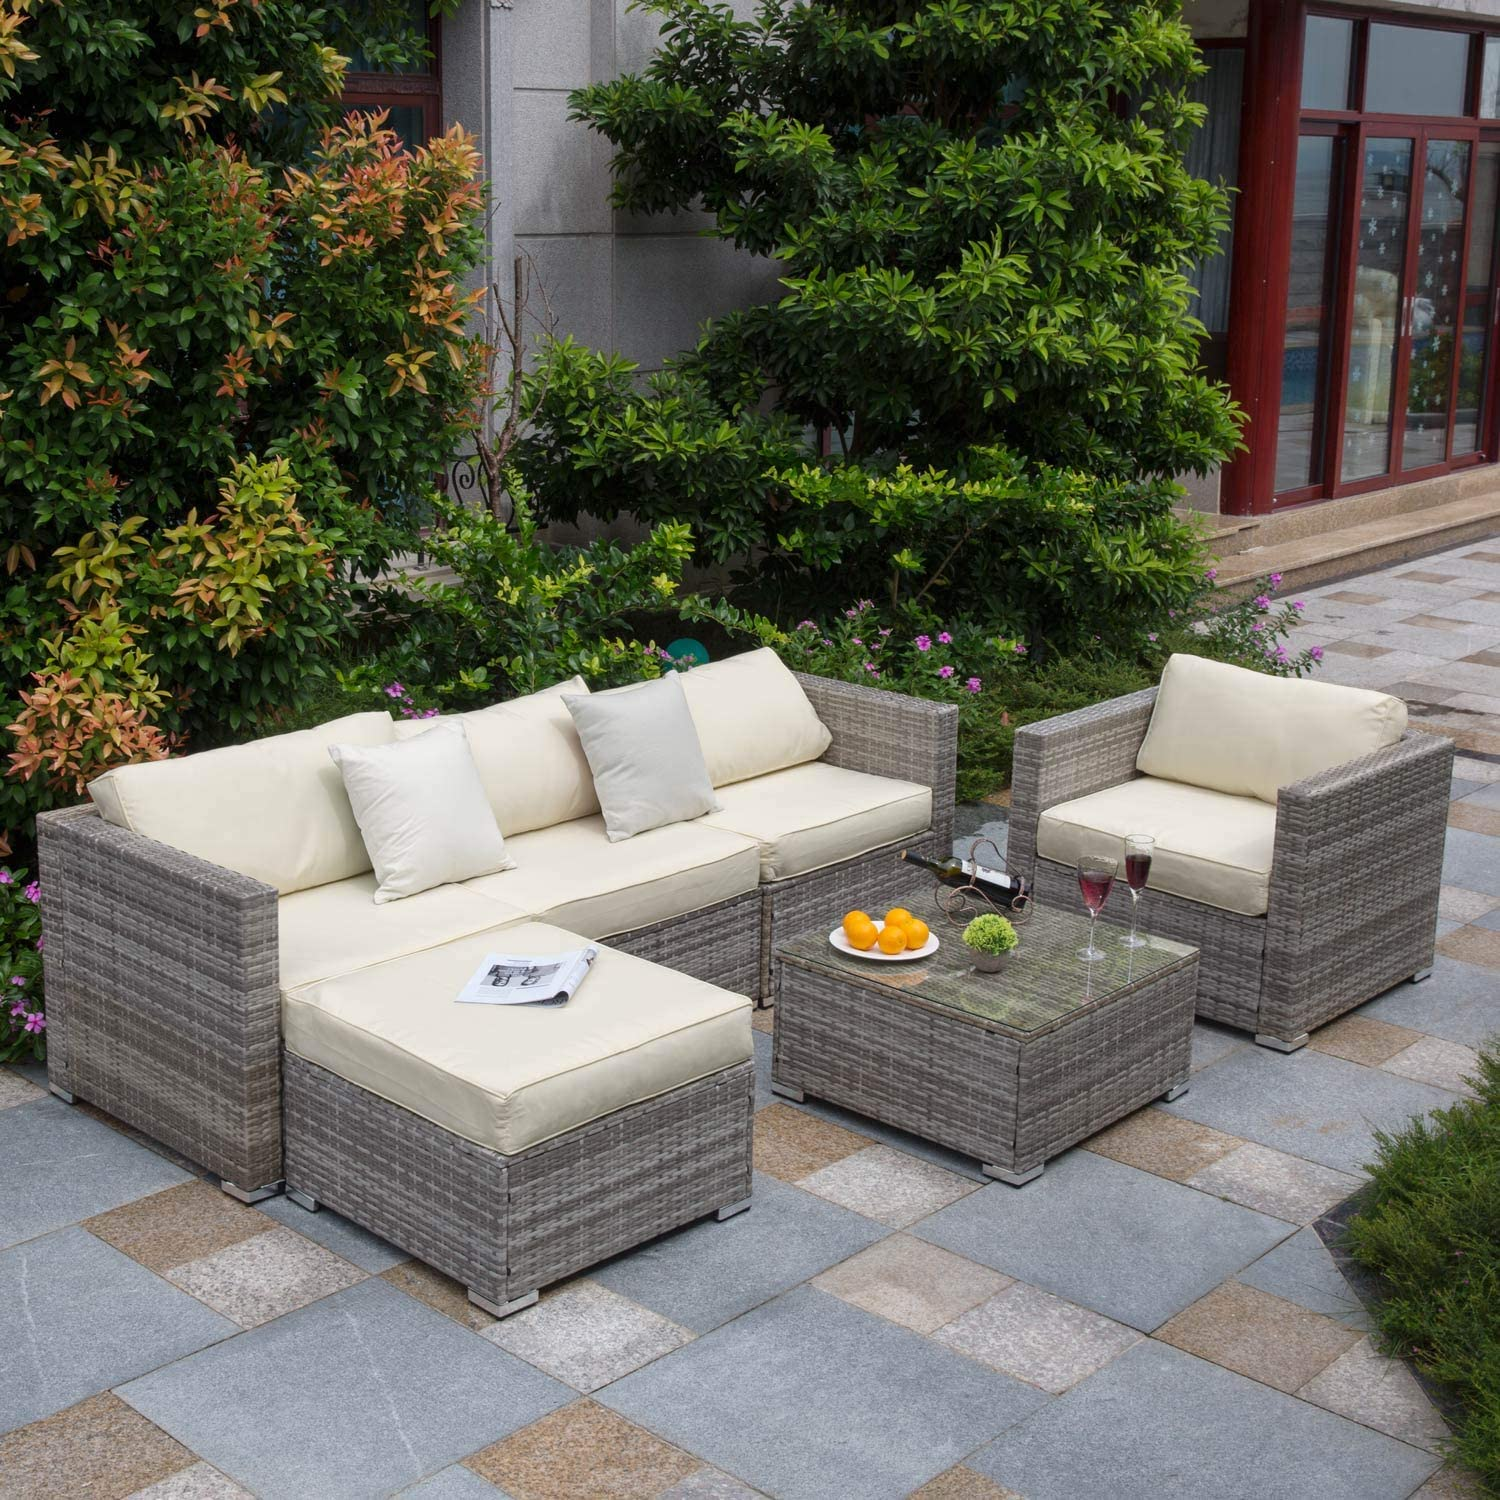 tribesigns 6 pcs outdoor furniture sectional sofa set large wicker patio furniture conversation set rattan couch with waterproof cushions backyard